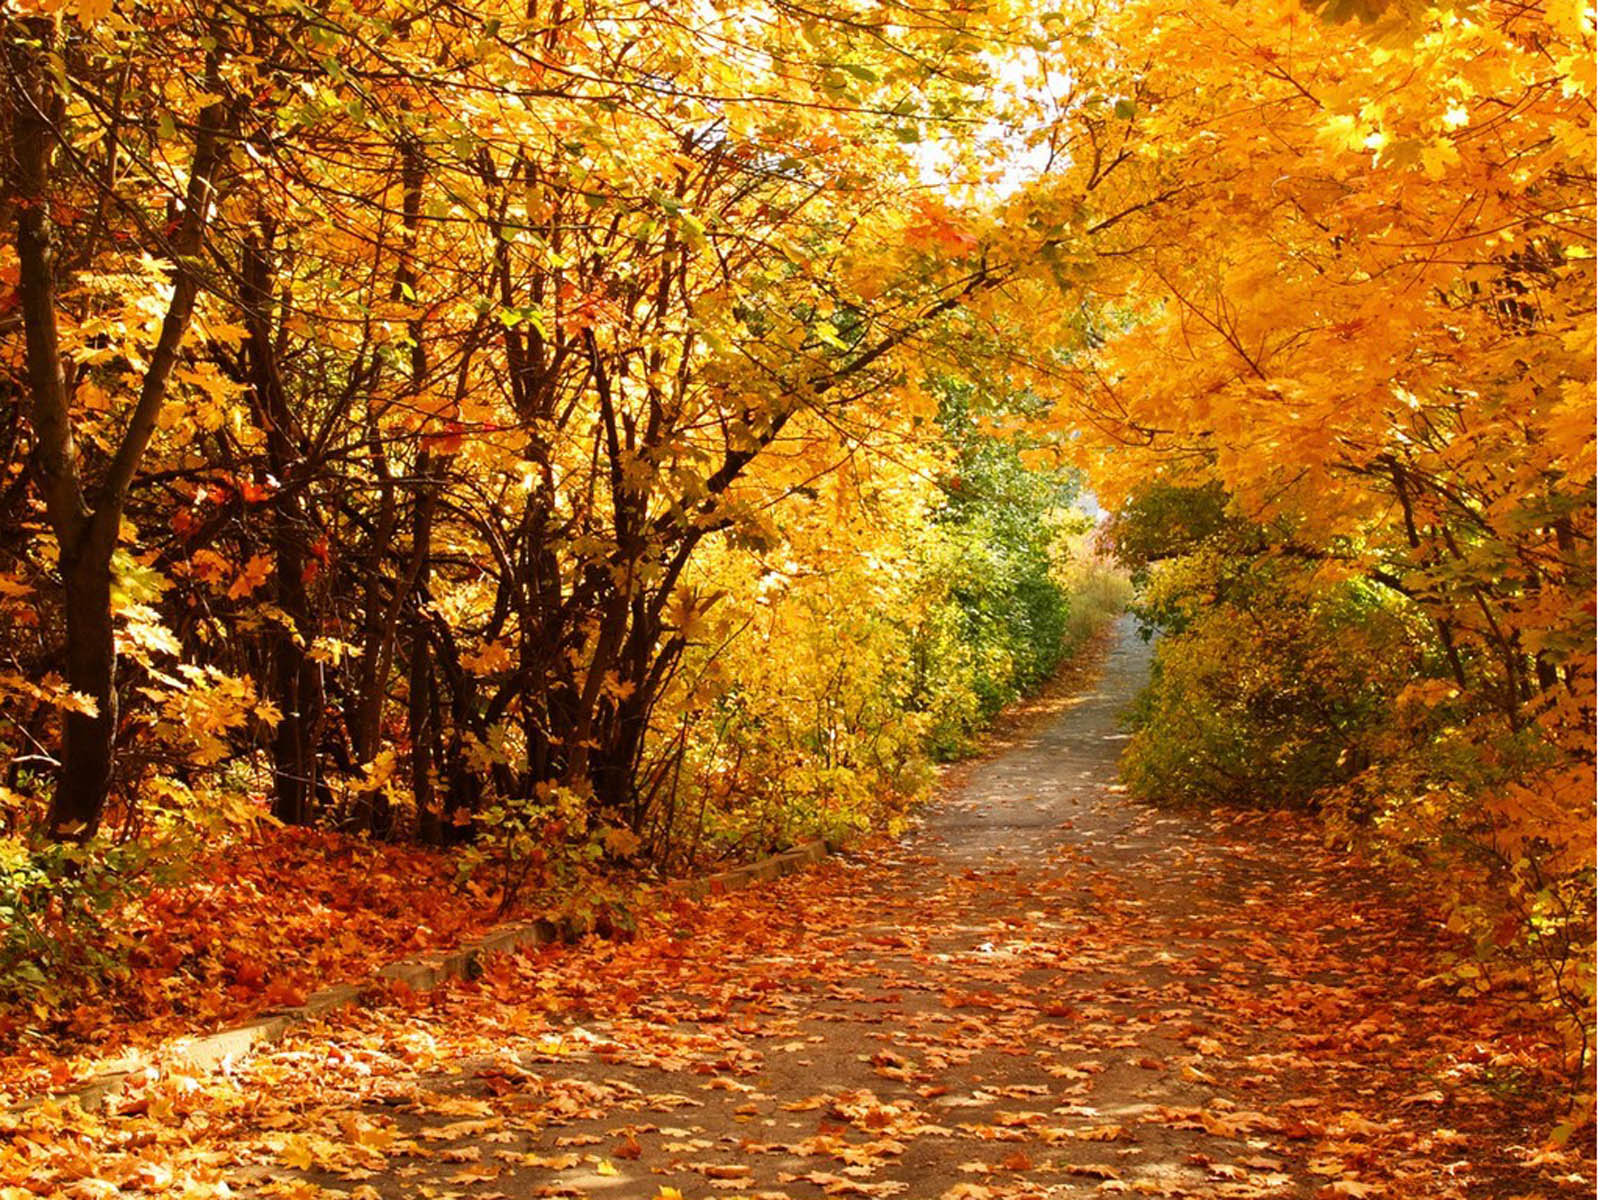 Wallpapers Beautiful Autumn Scenery Desktop BackgroundsBeautiful 1600x1200